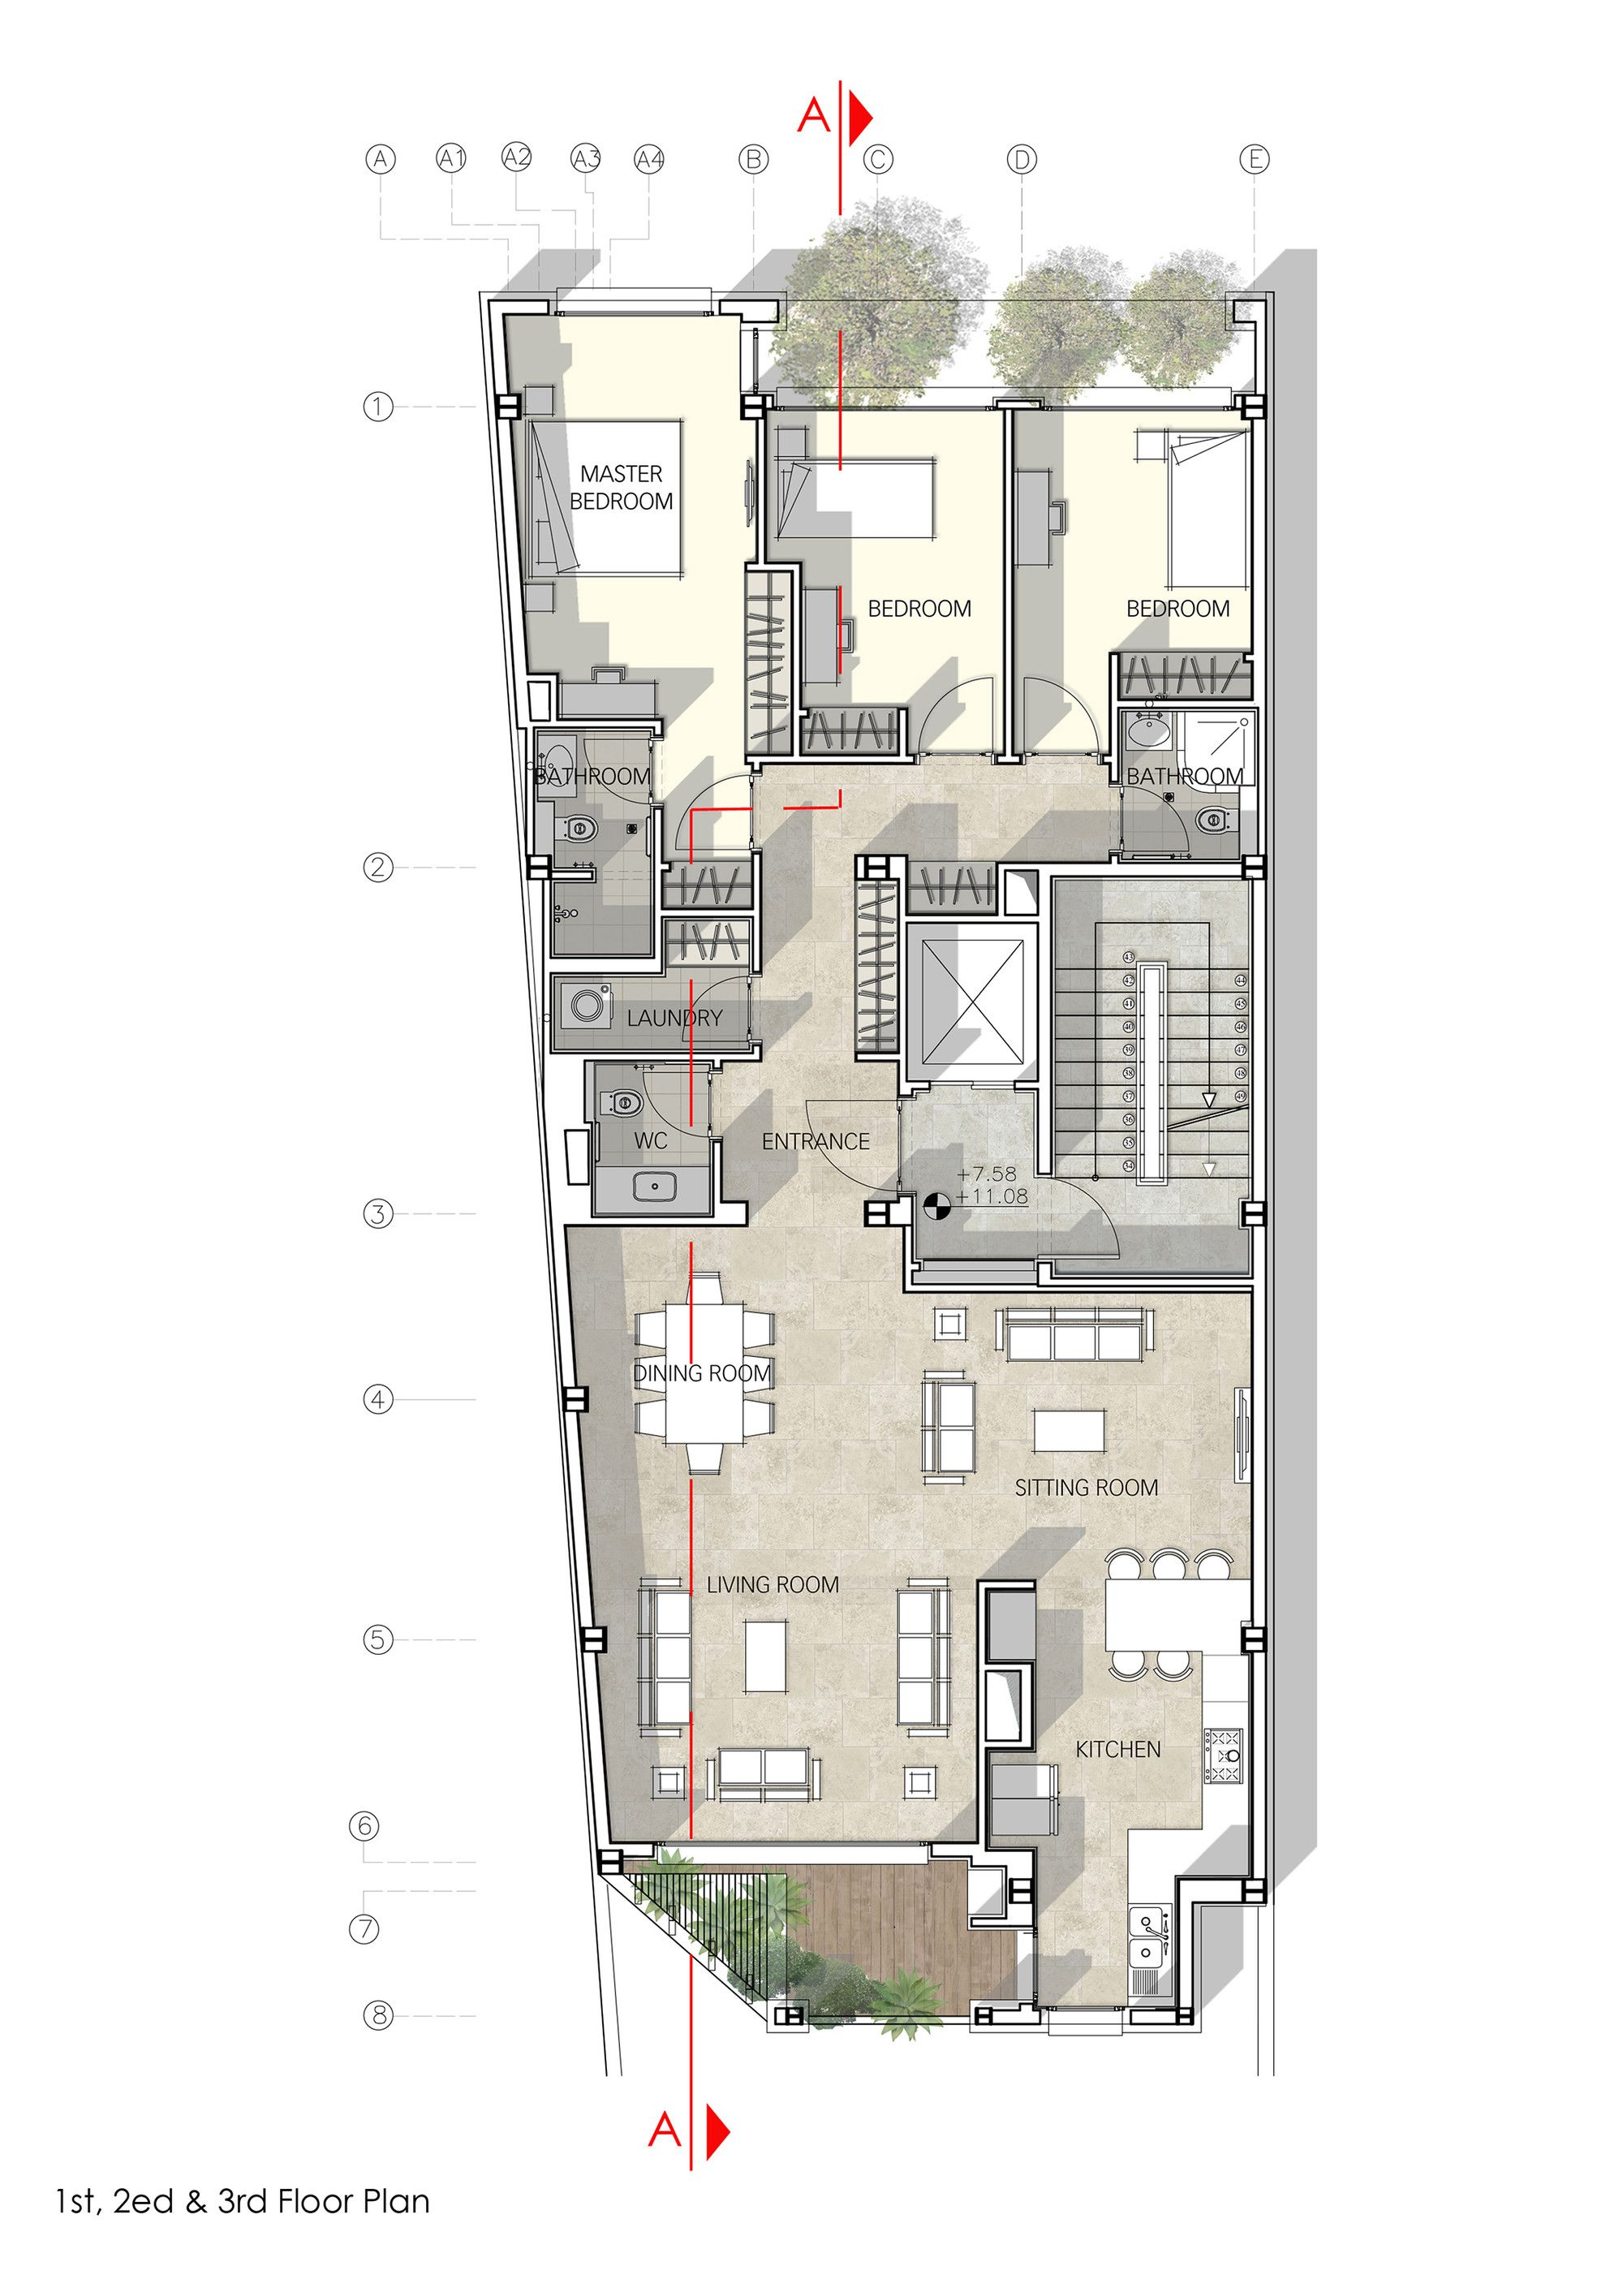 Haghighi residential buildingfirst second third floor plan